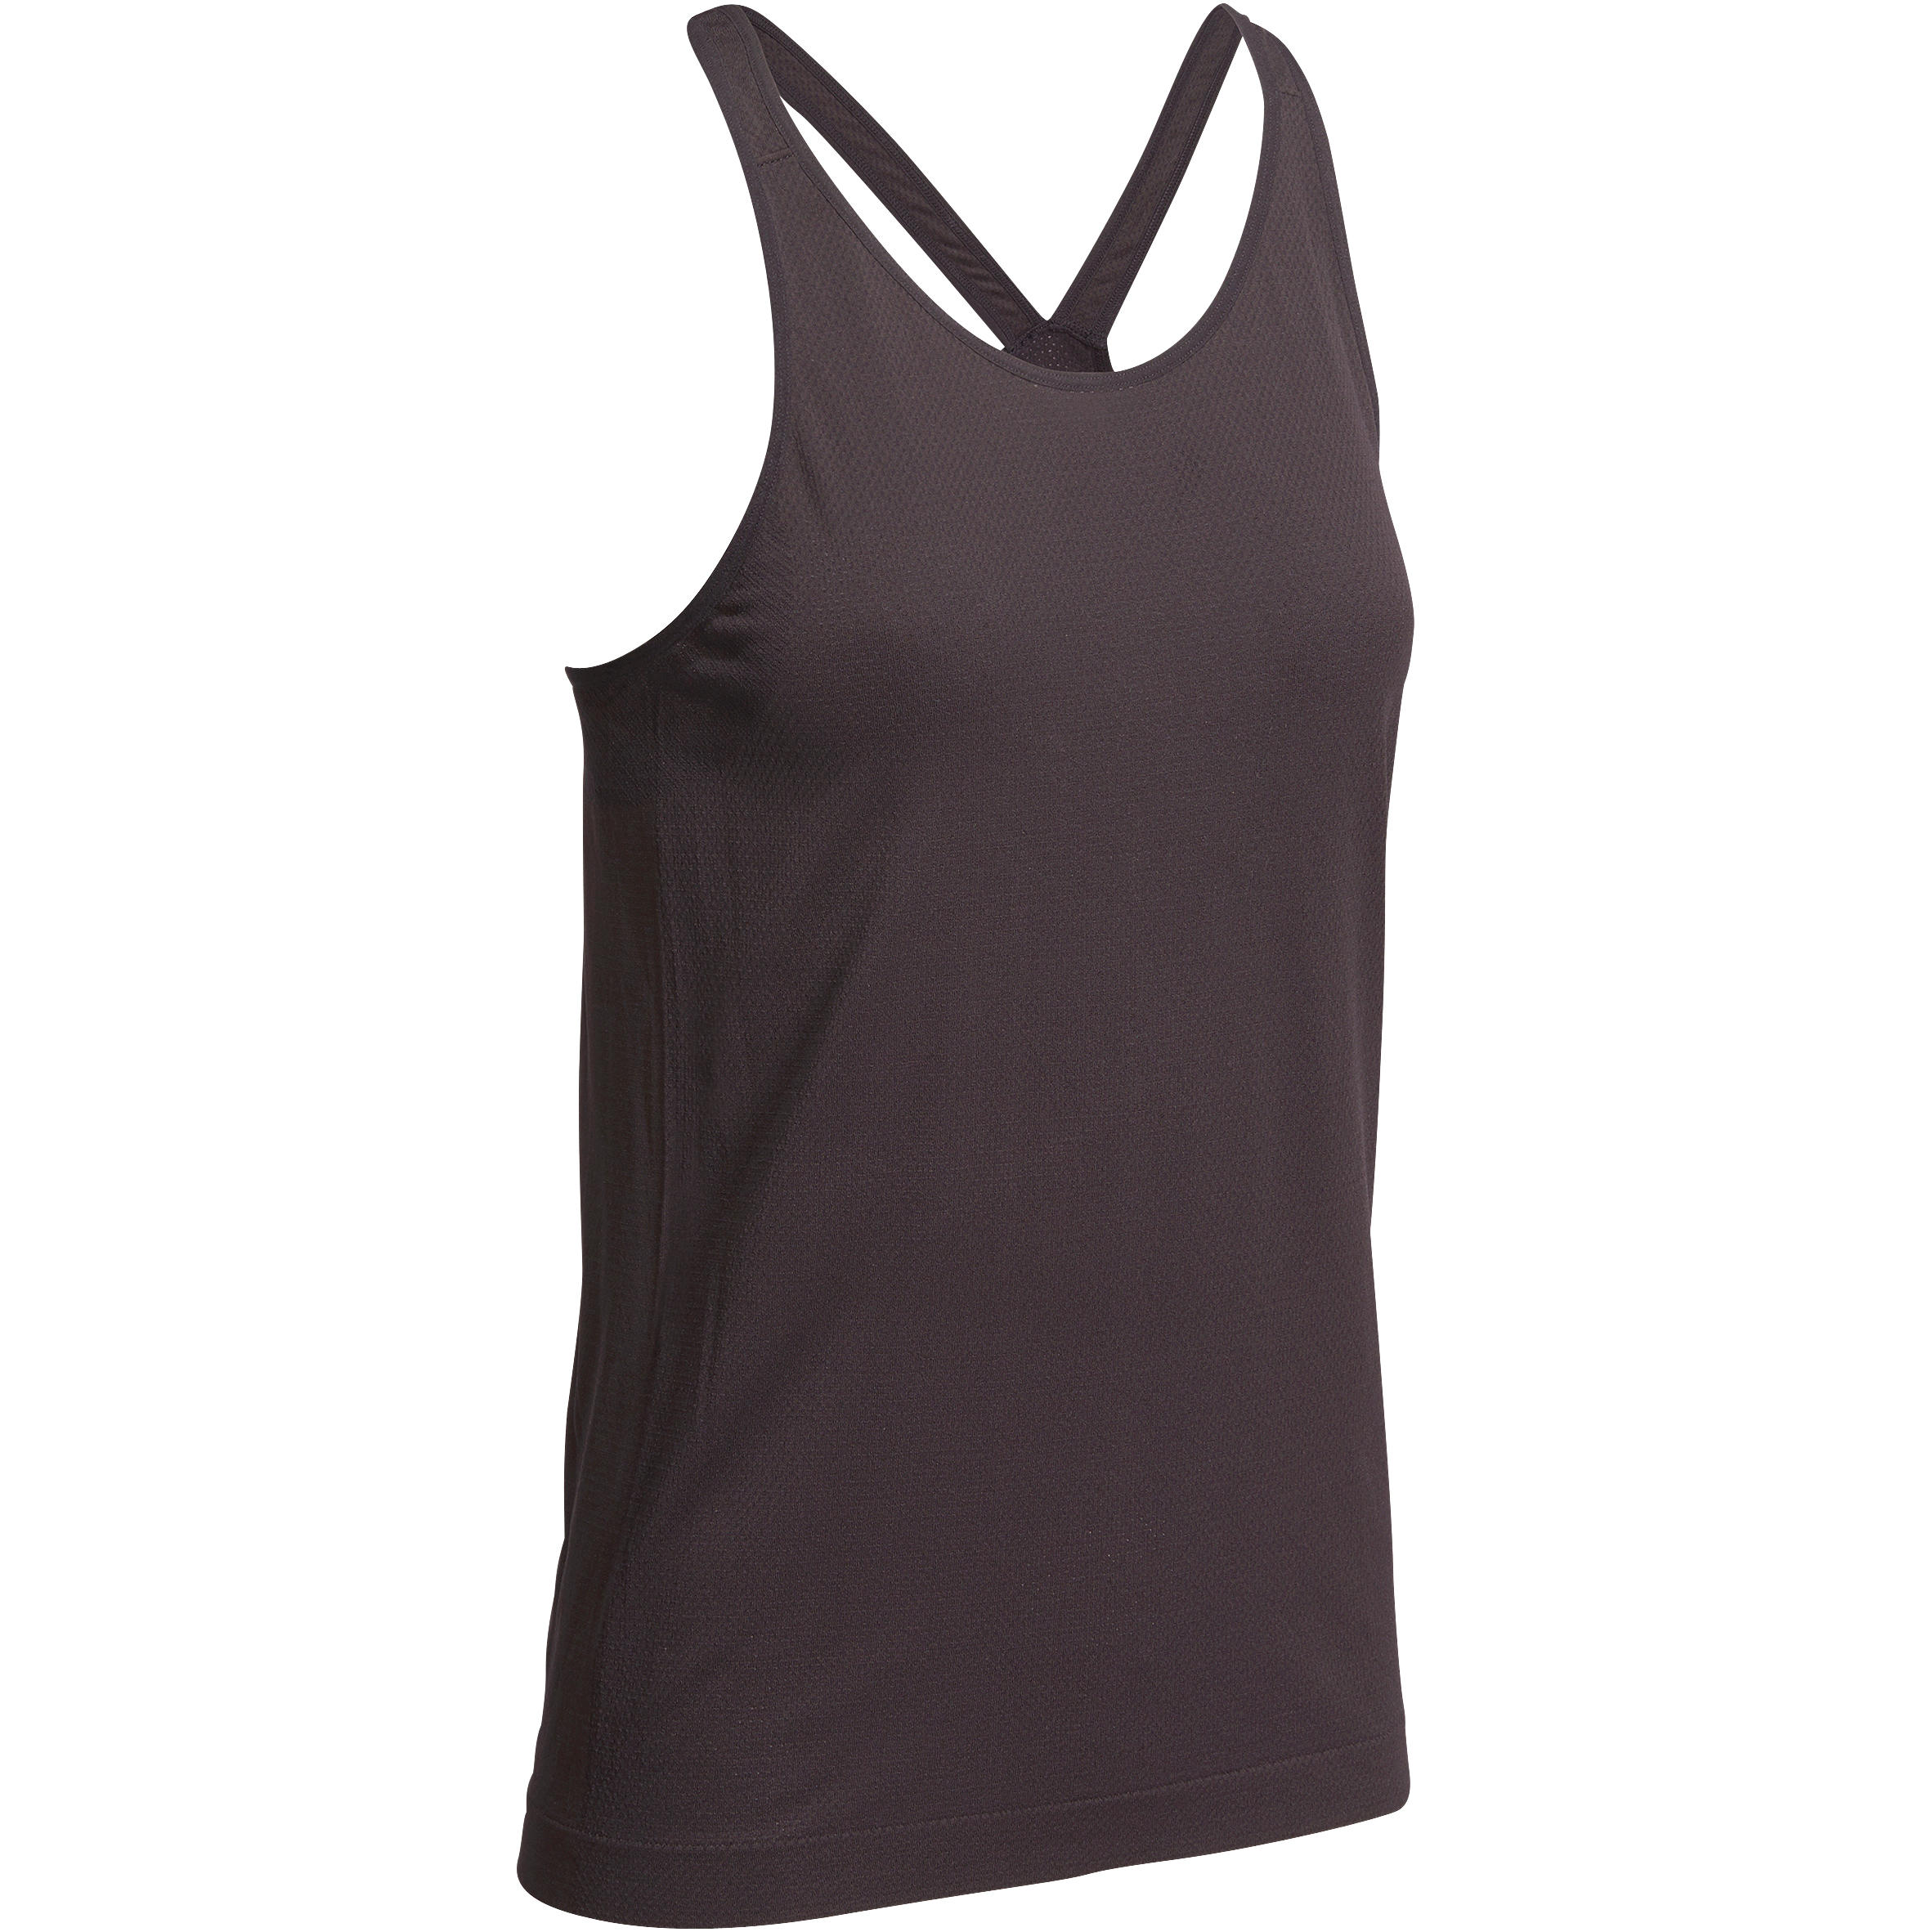 Tank Top Yoga+ Women's Seamless - Black